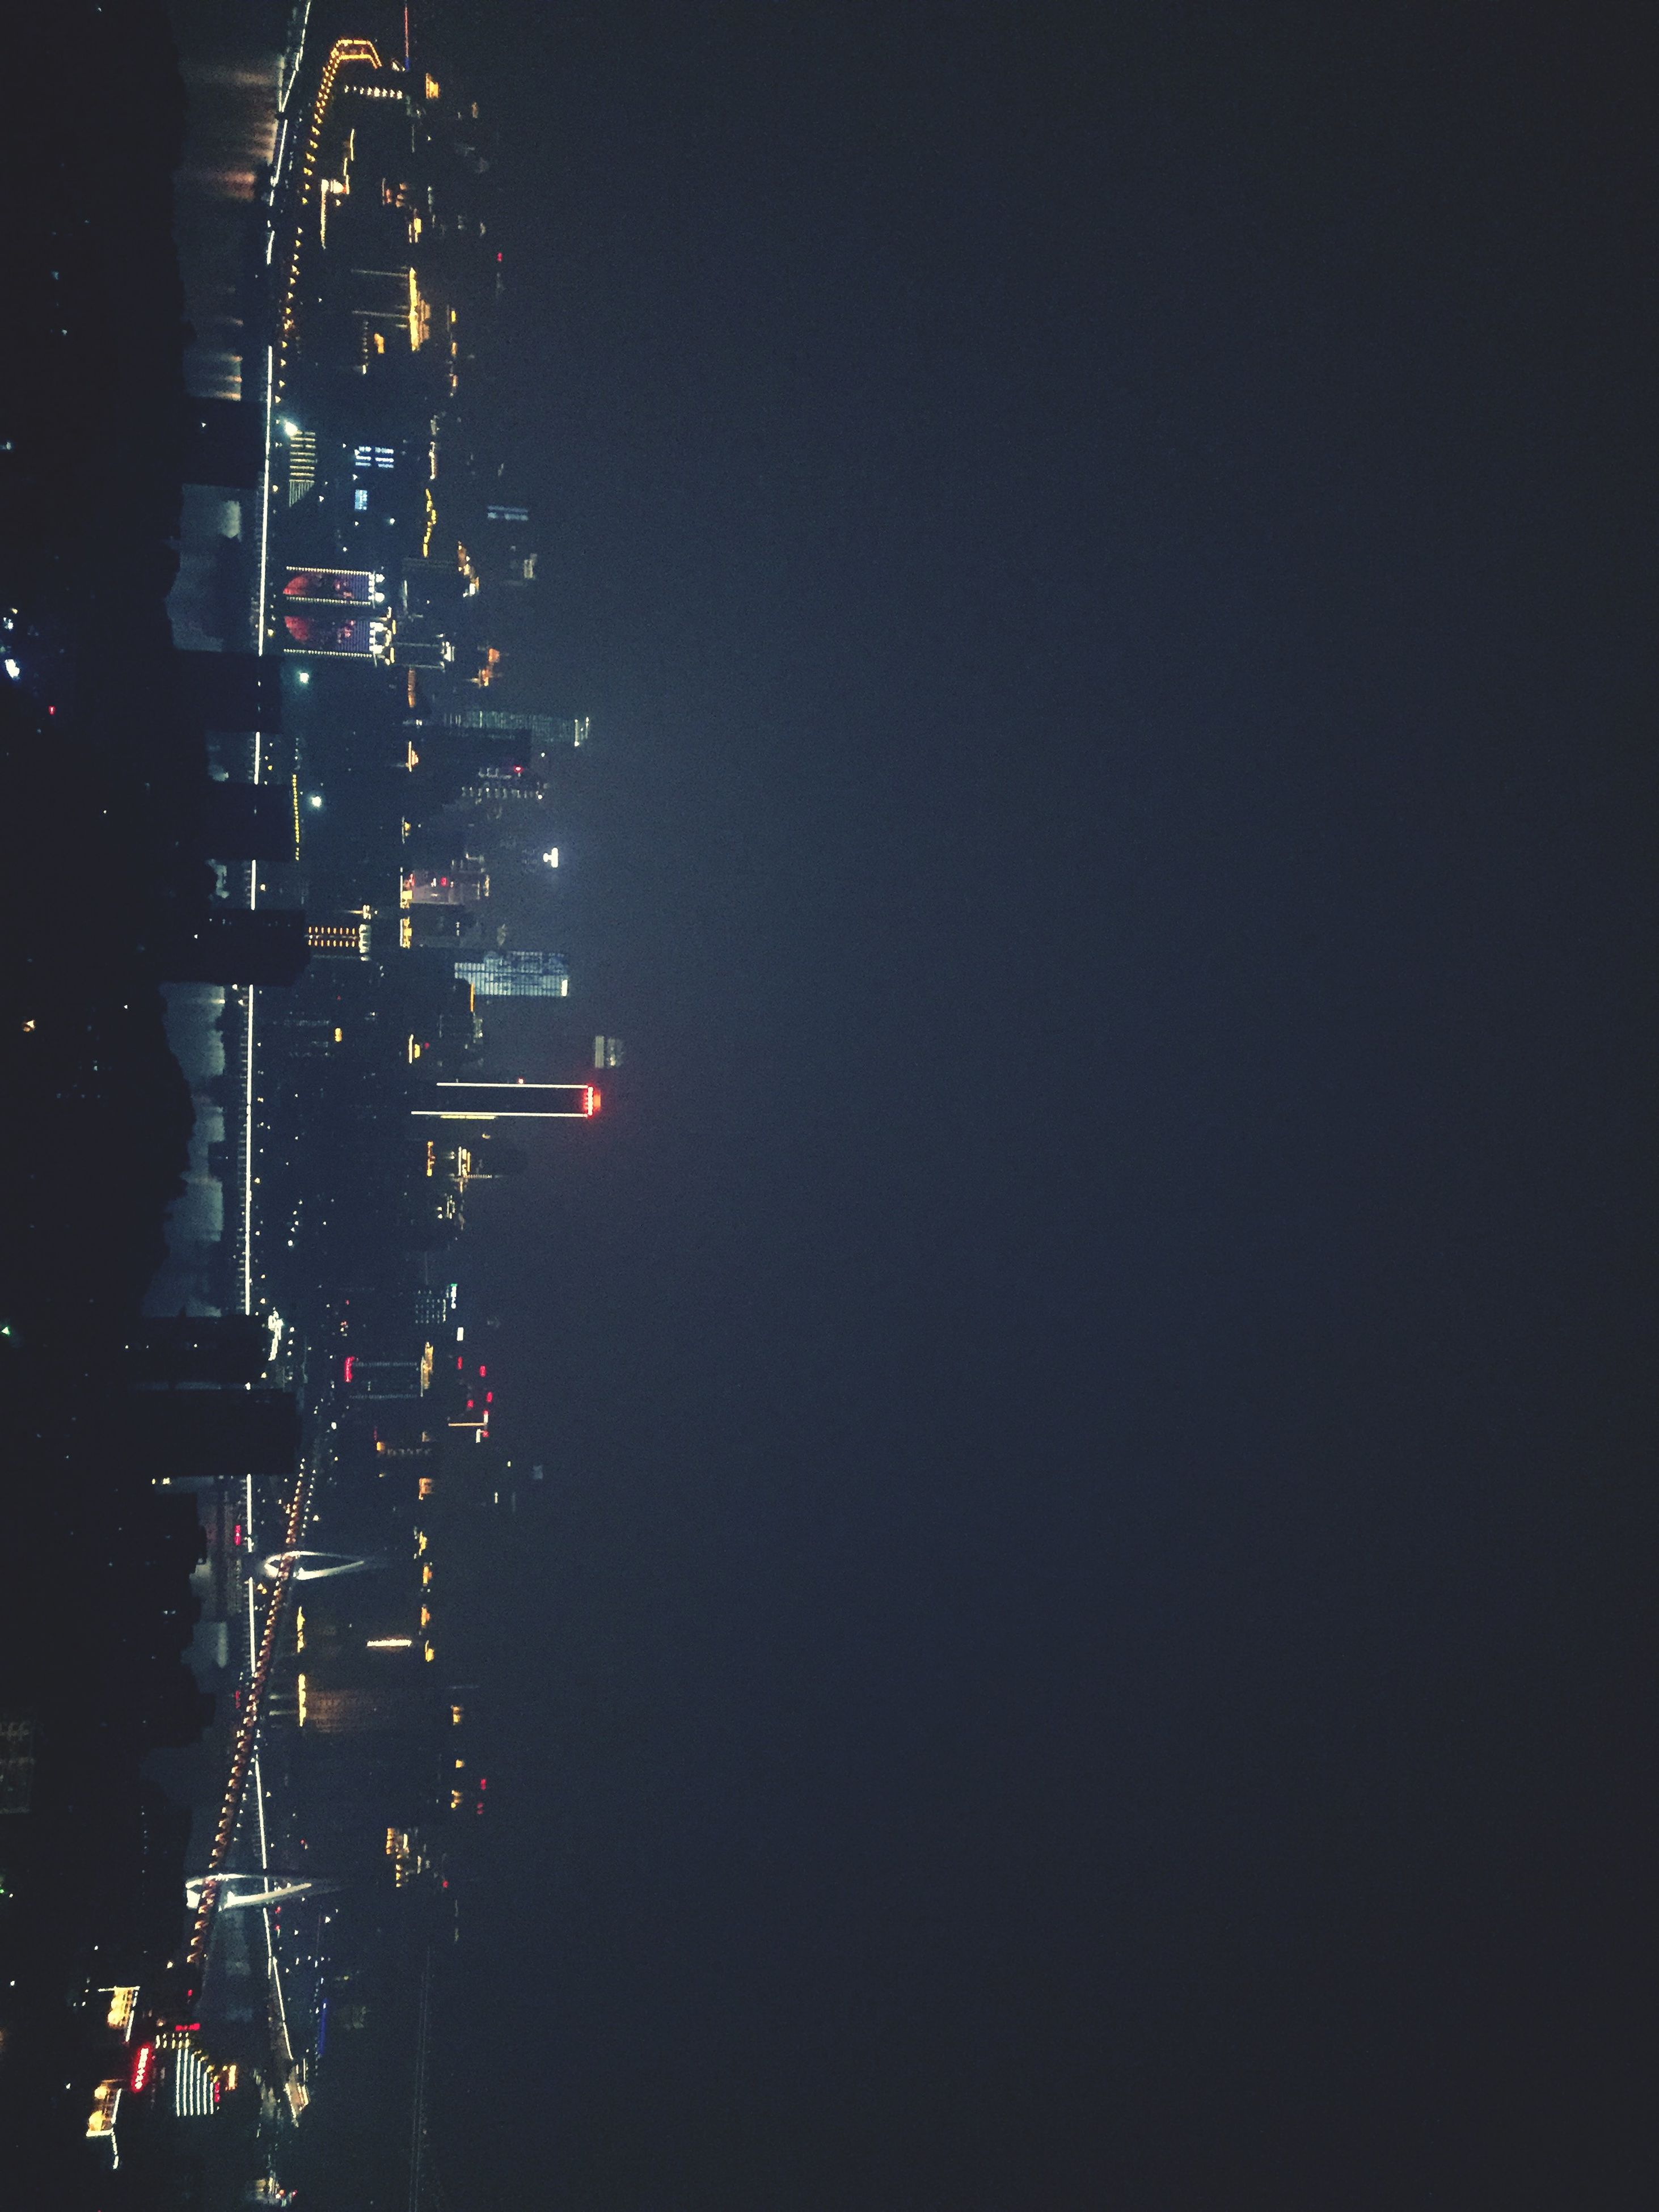 night, illuminated, building exterior, city, architecture, built structure, cityscape, skyscraper, tall - high, tower, modern, office building, sky, city life, copy space, urban skyline, clear sky, residential building, outdoors, light - natural phenomenon